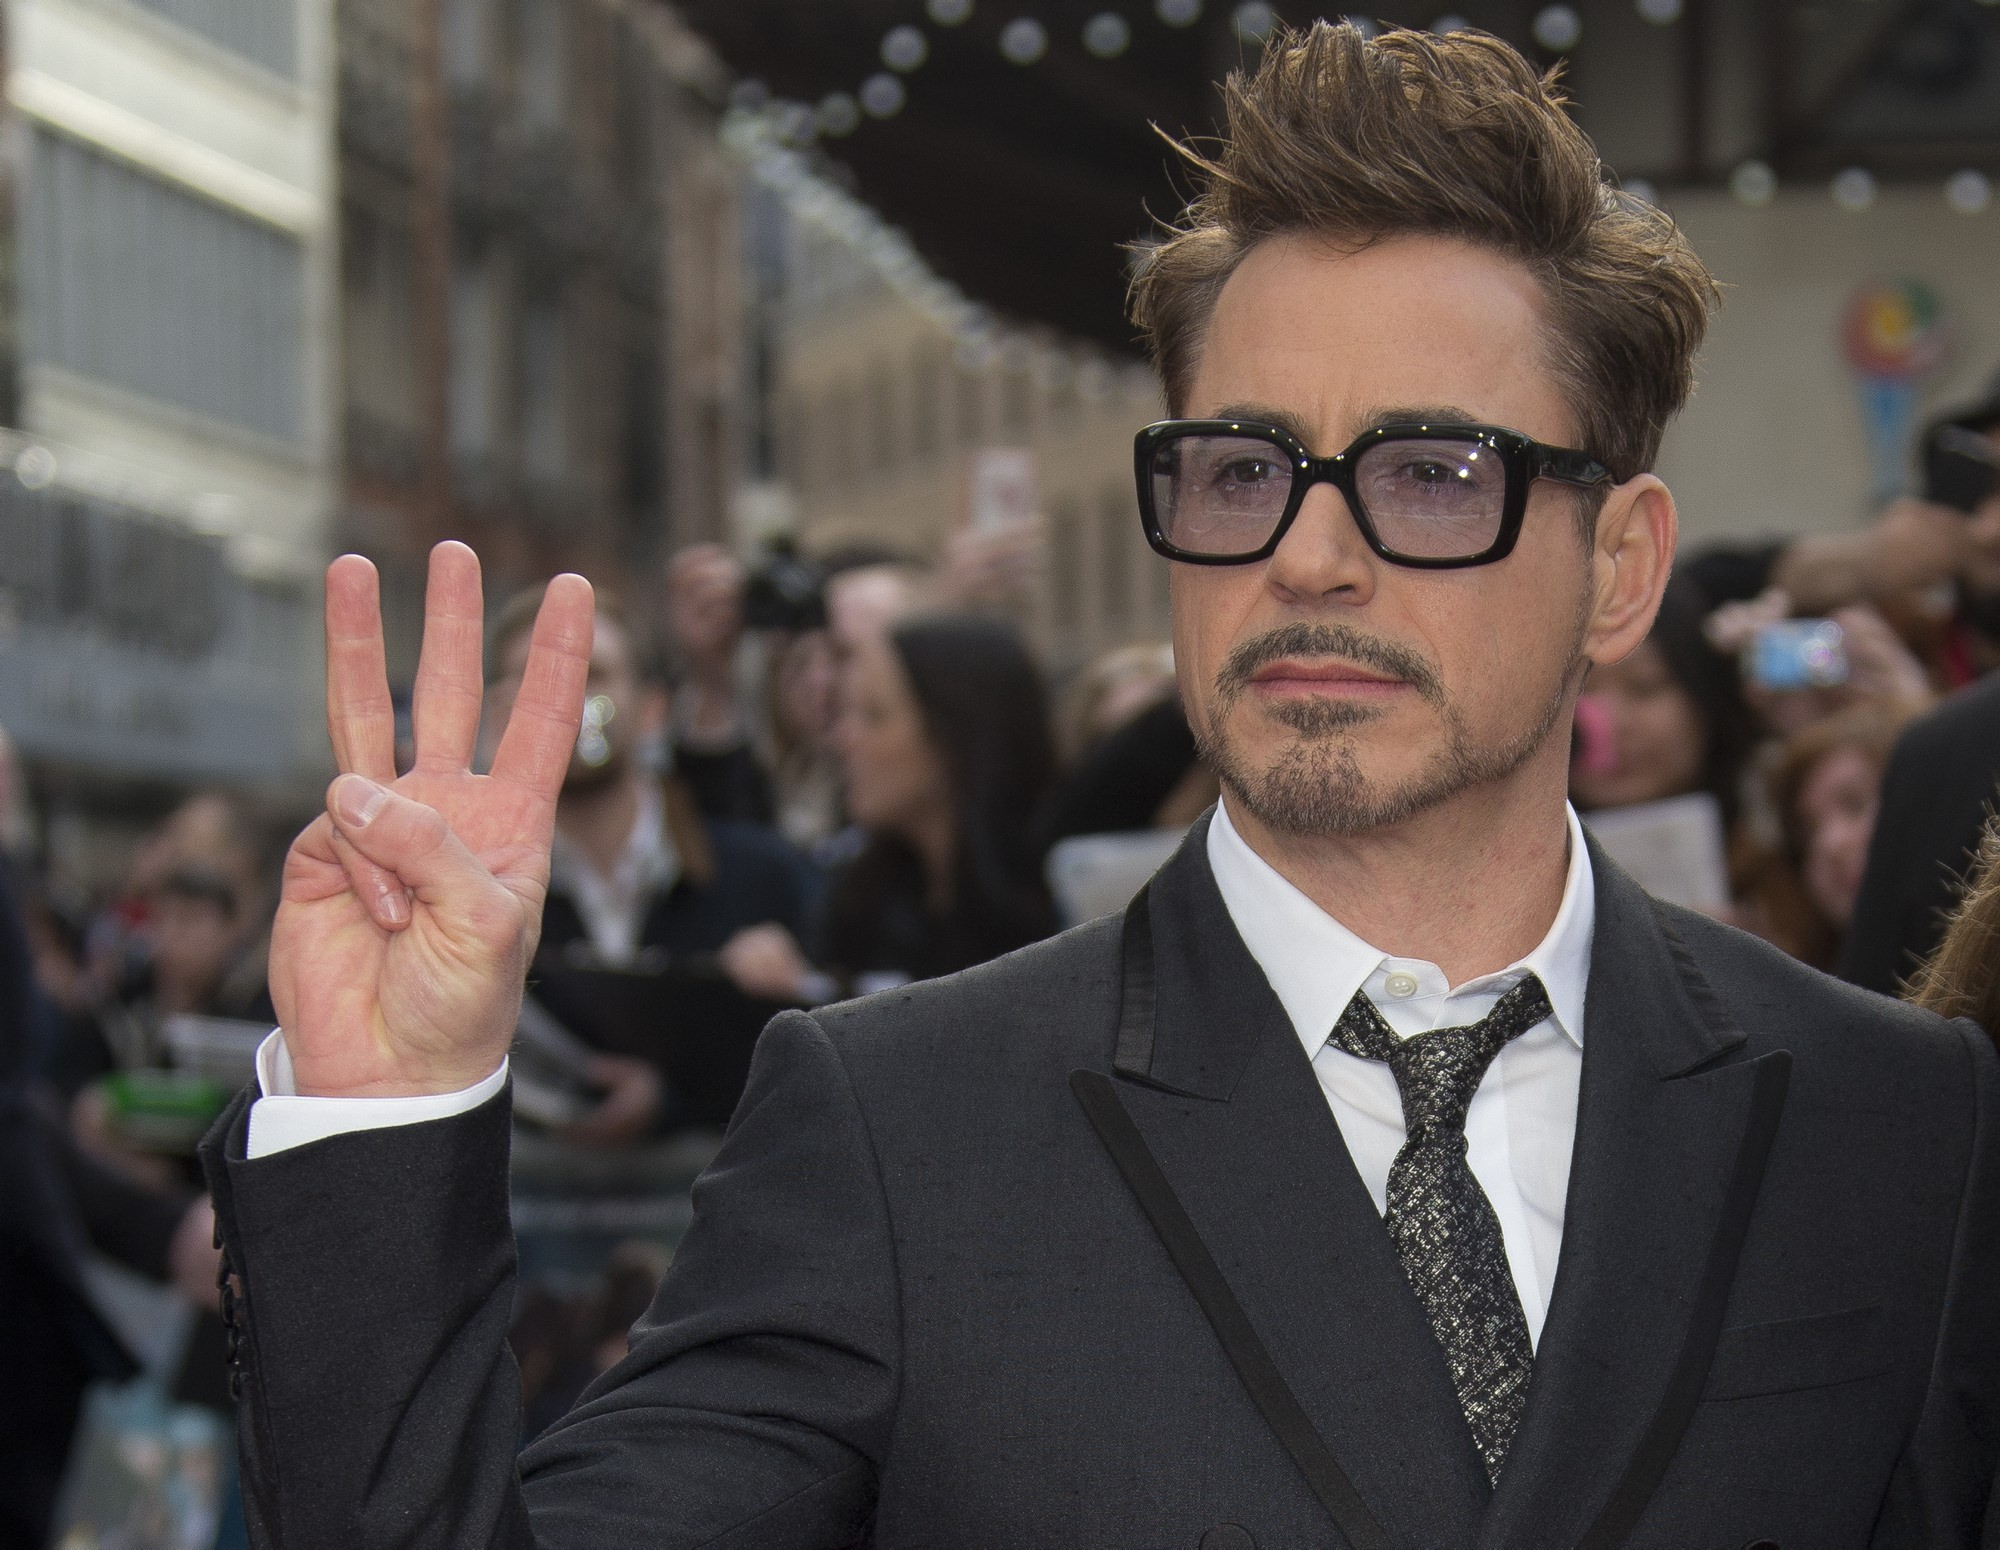 10 Things You Didn't Know About Robert Downey Jr.   Robert Downey Jr. at Comic Con